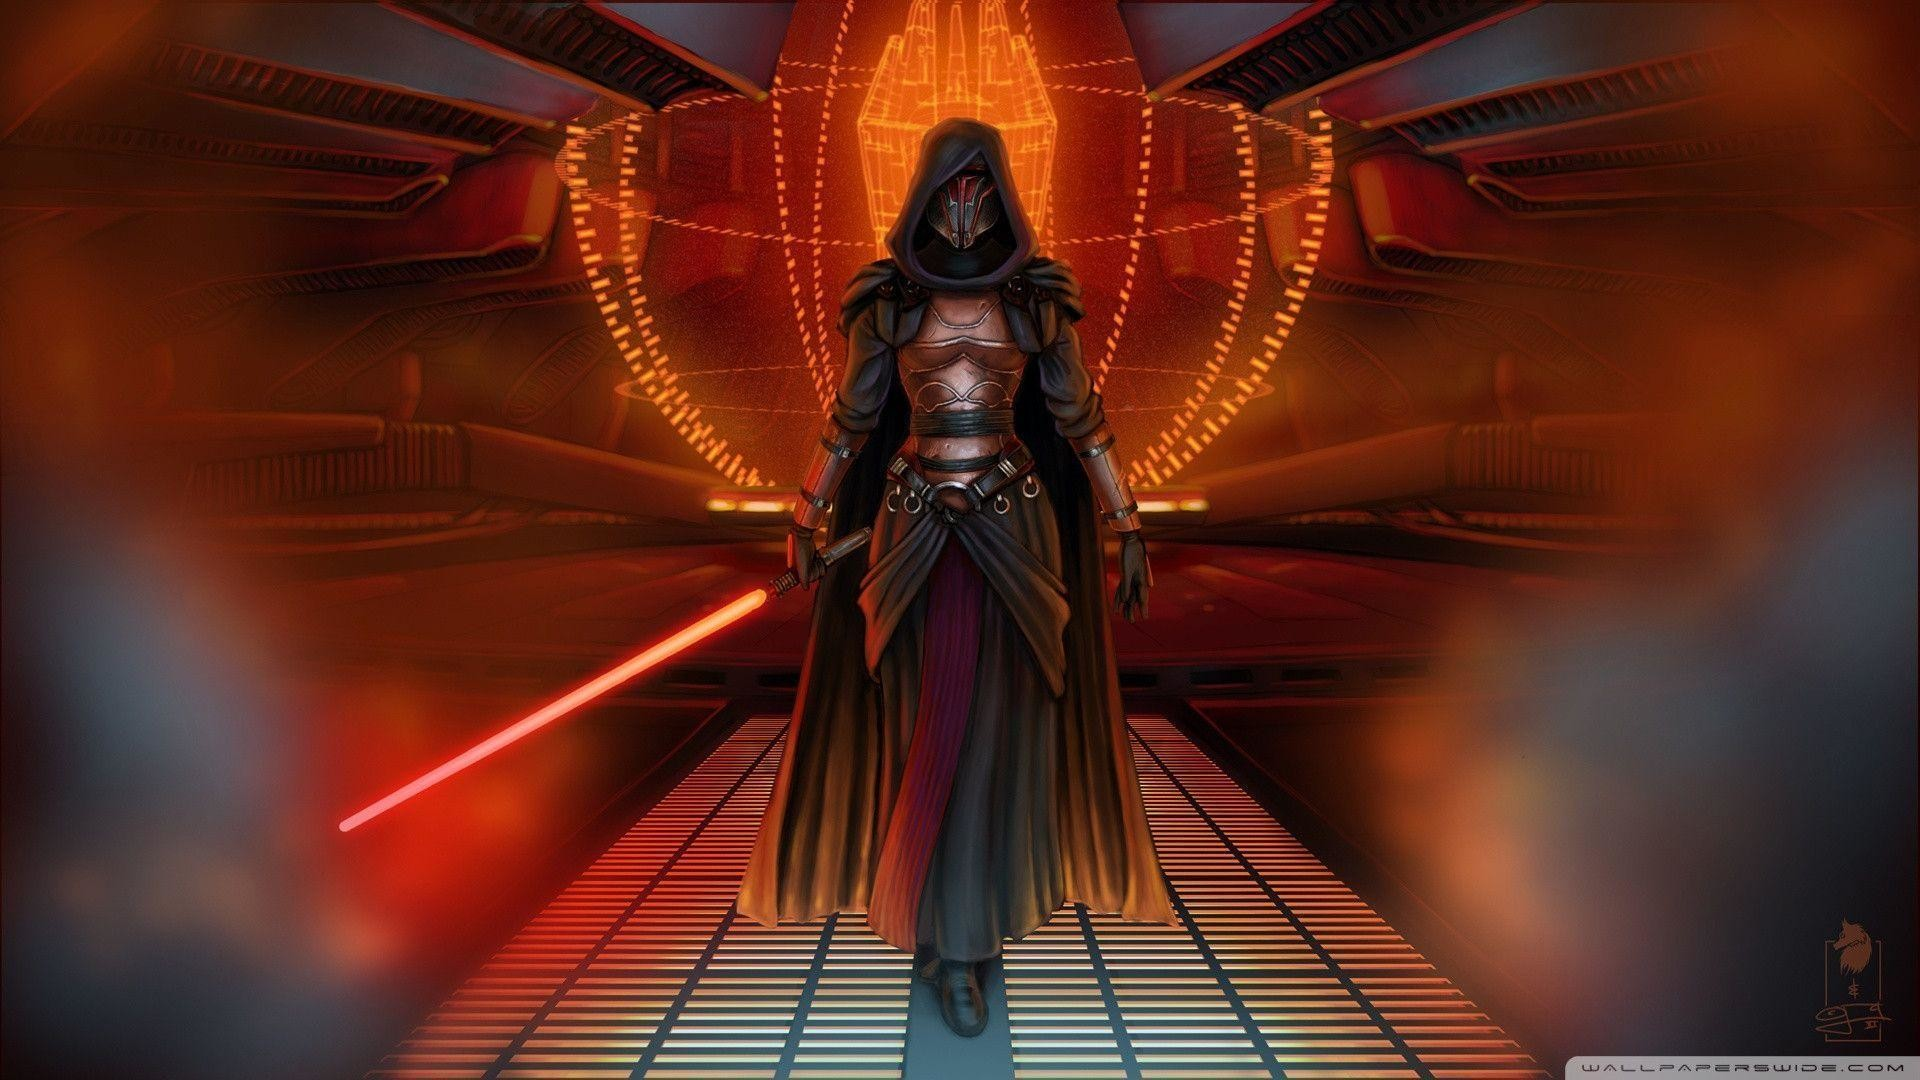 1920x1080 Download Darth Revan Star Wars Kotor Wallpaper  .